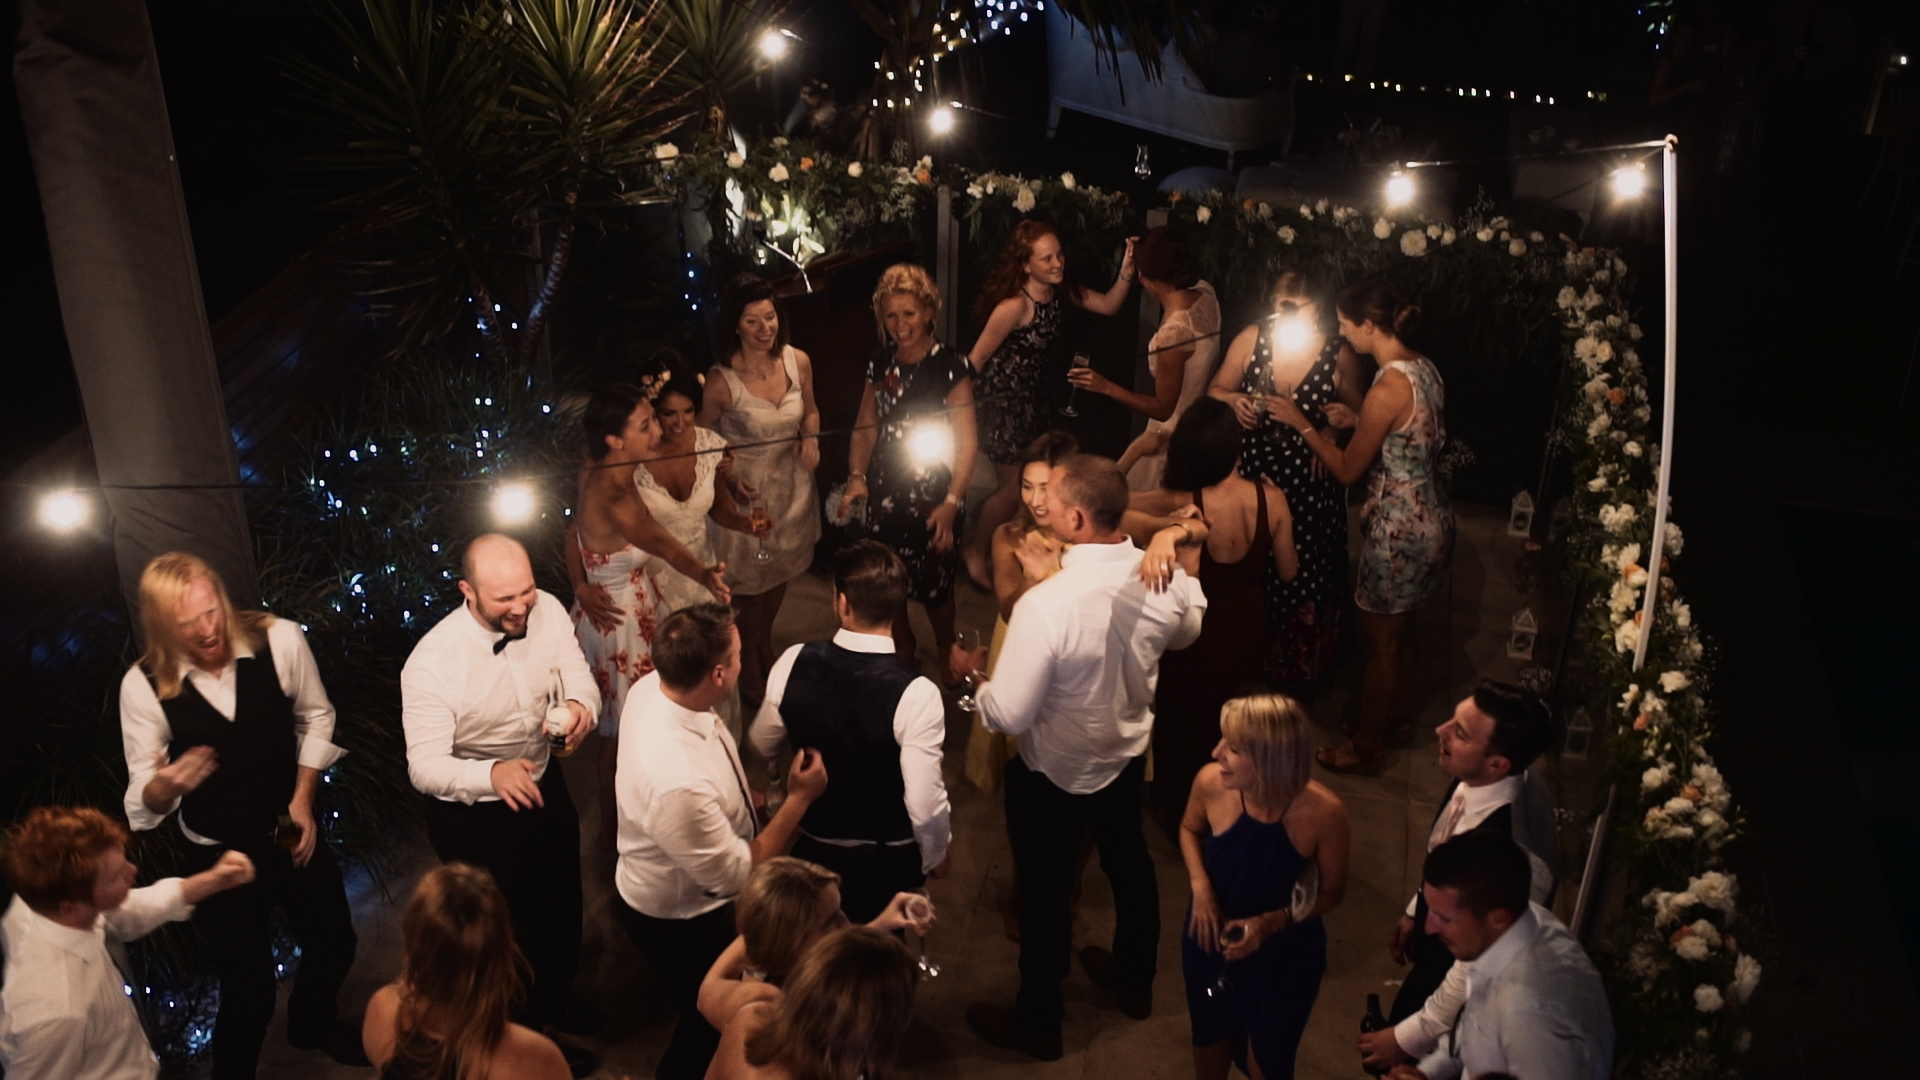 lewis and kelly wedding videography sydney